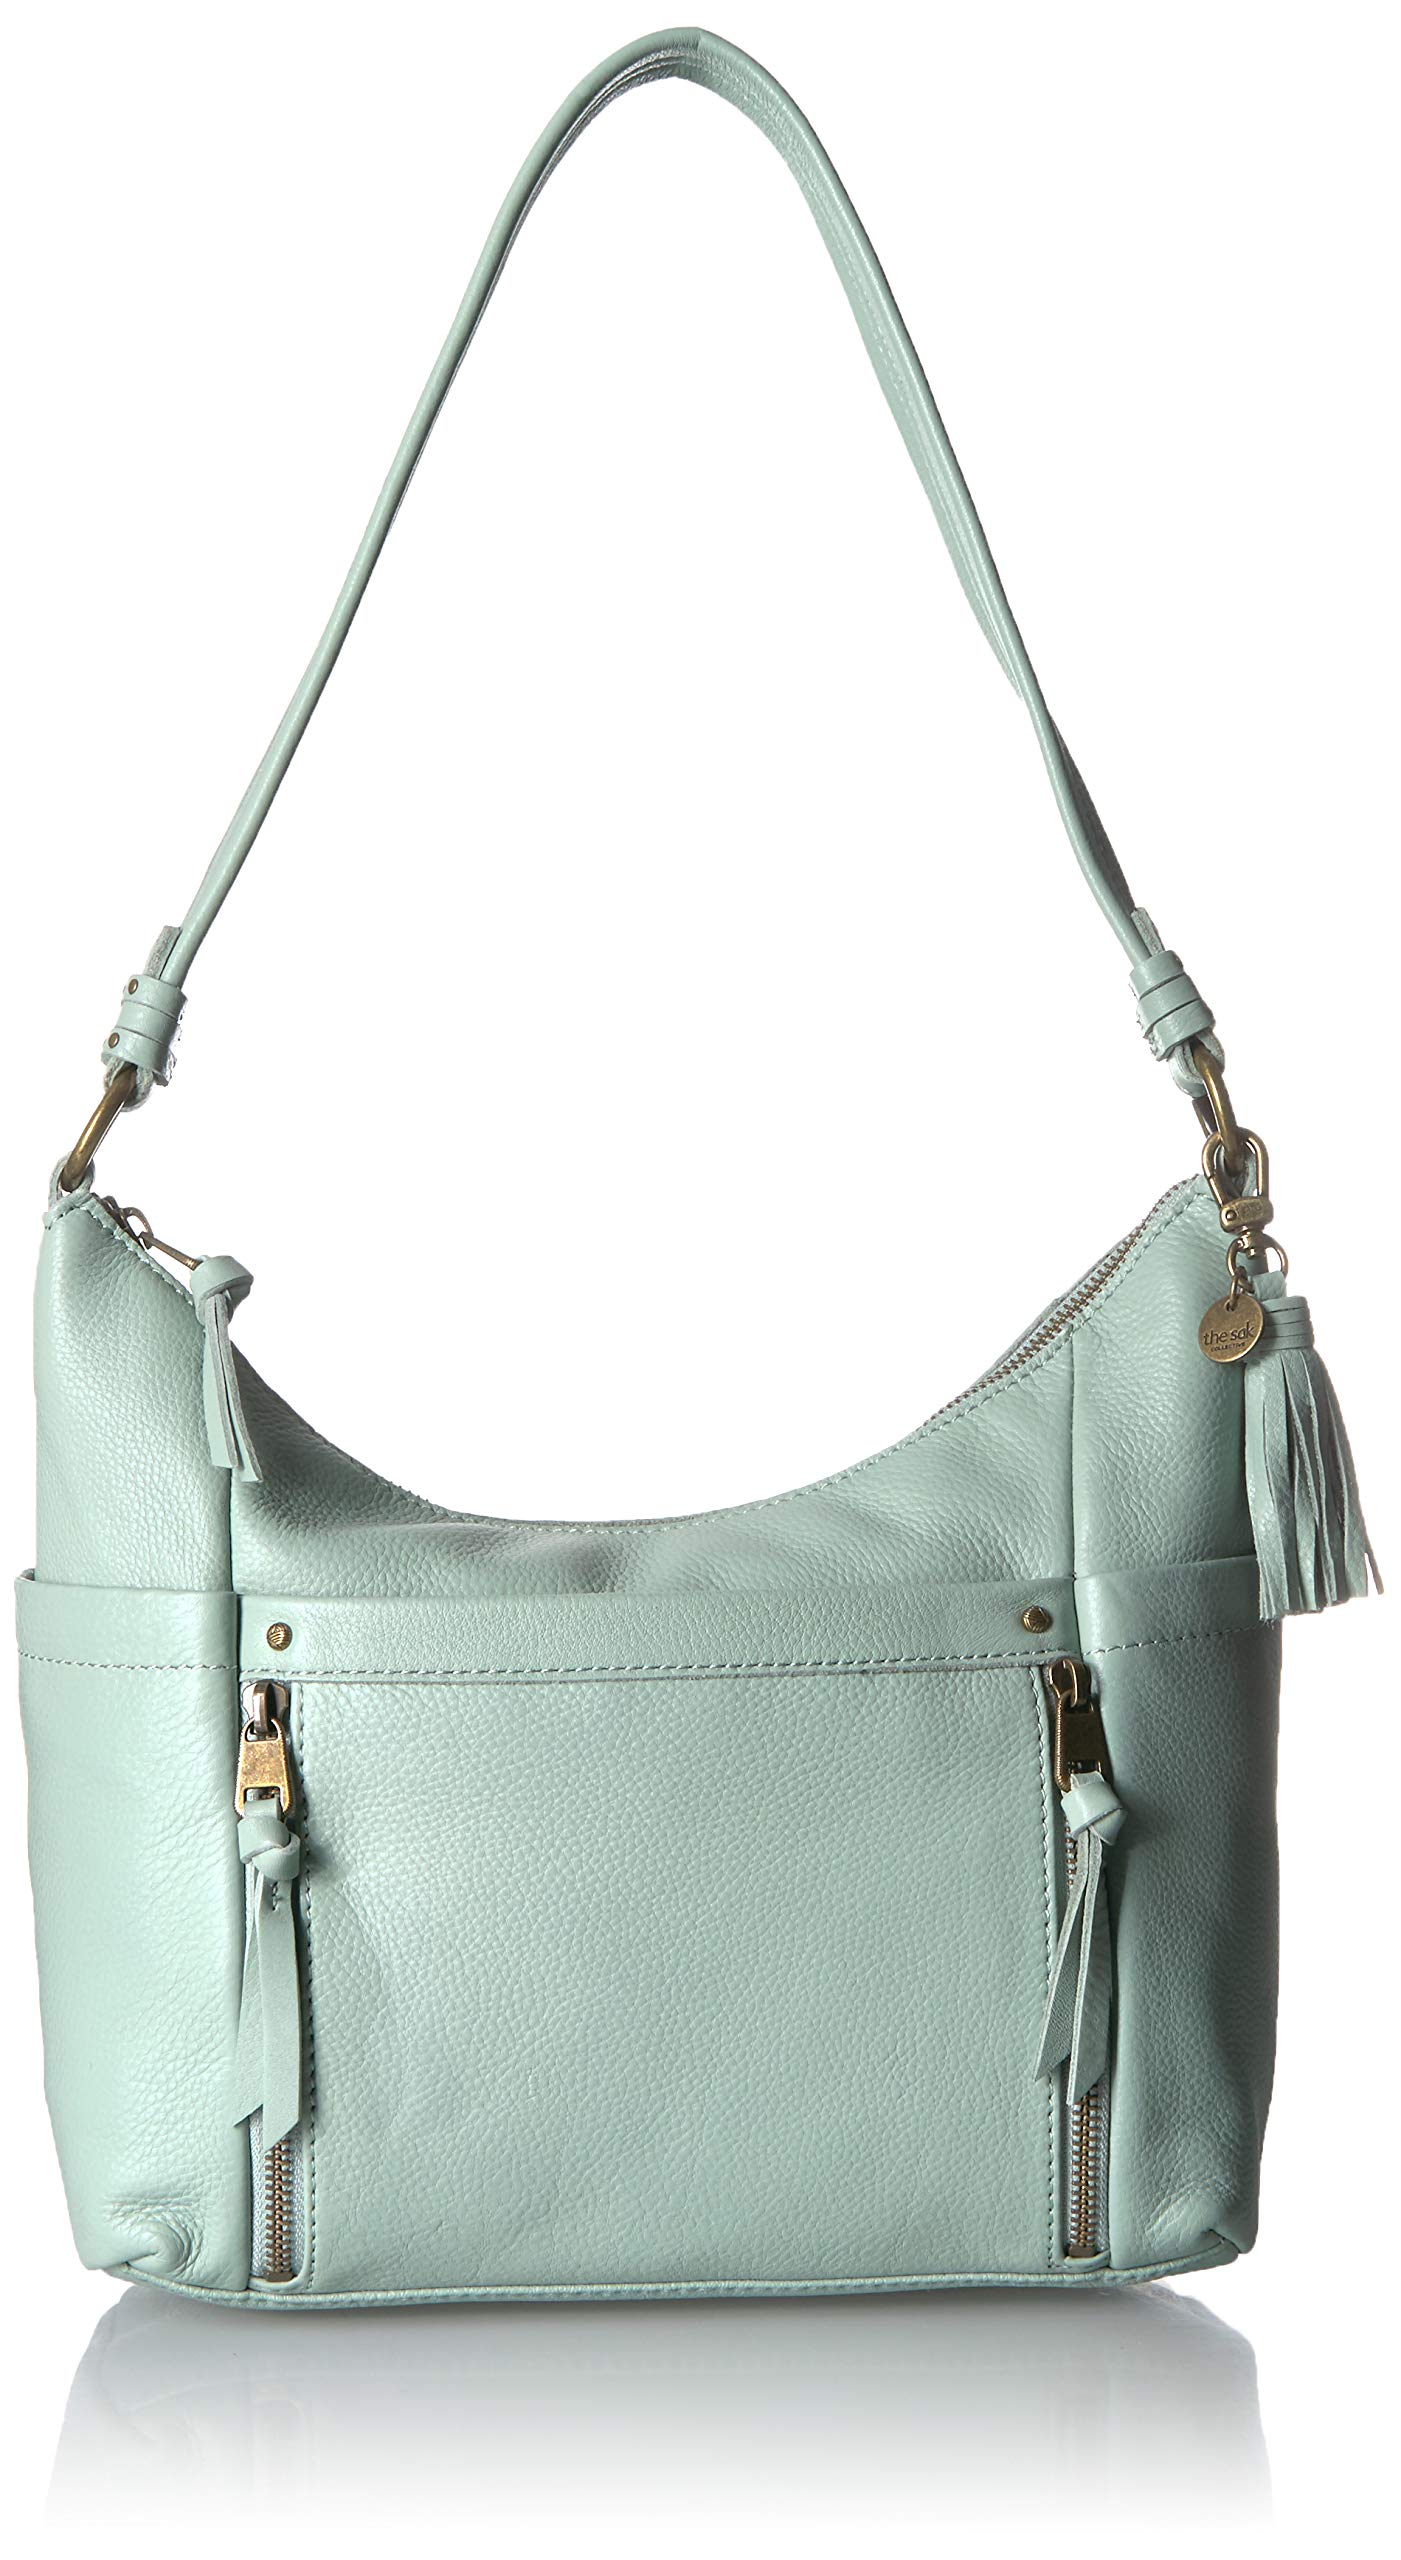 The Sak Women's Keira Hobo by the Sak Collective Mint One Size